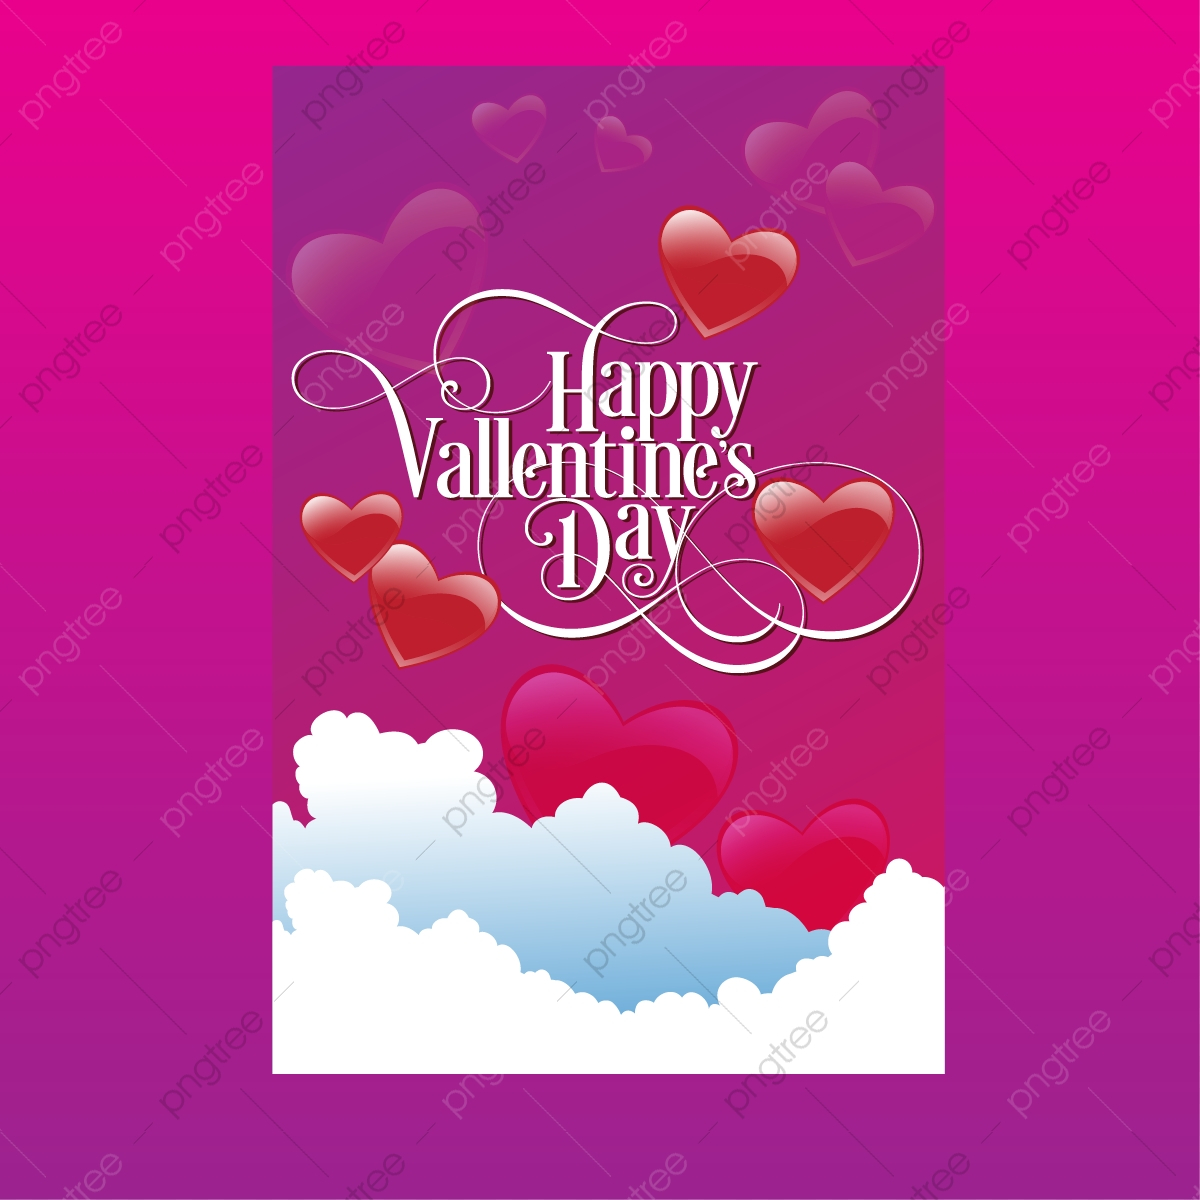 pngtree valentine s day classic style card background template vector png image